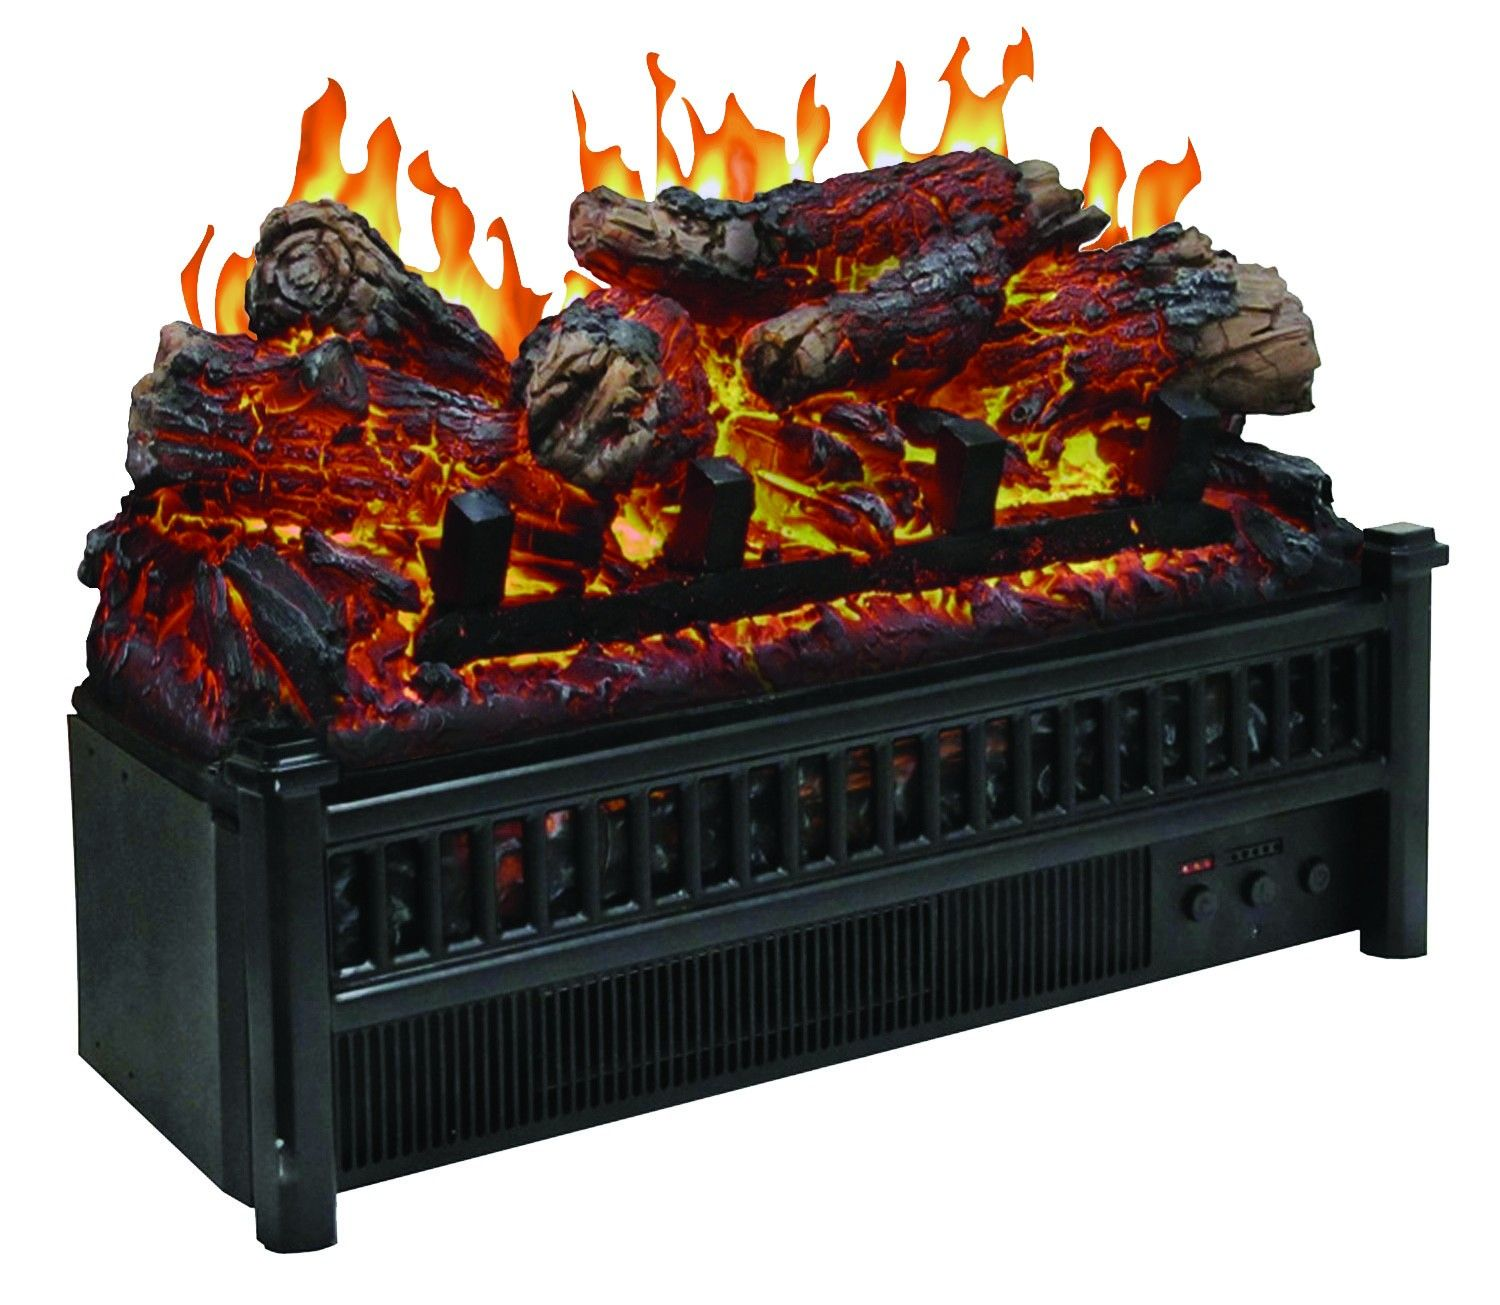 24 Inch Electric Fireplace Insert New Electric Logs with Heater Fireplace Insert